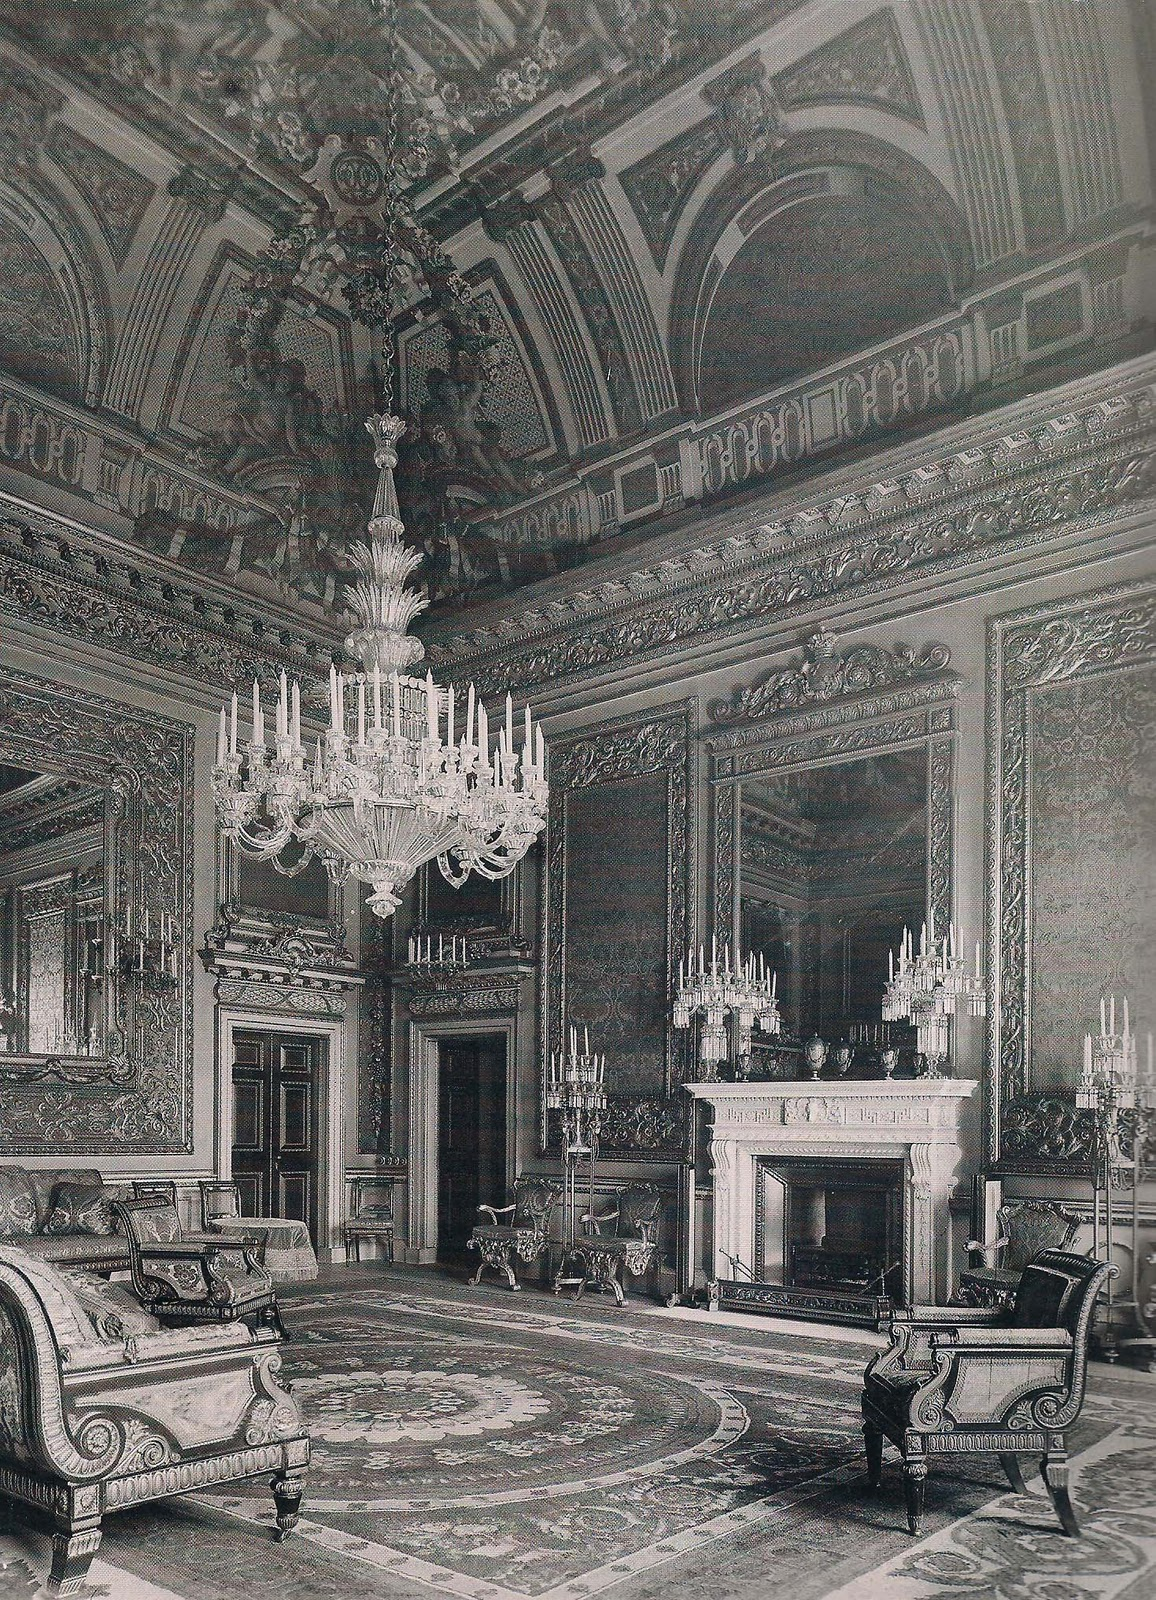 Chatsworth House Room: The Devoted Classicist: The Duke Of Devonshire's Lost